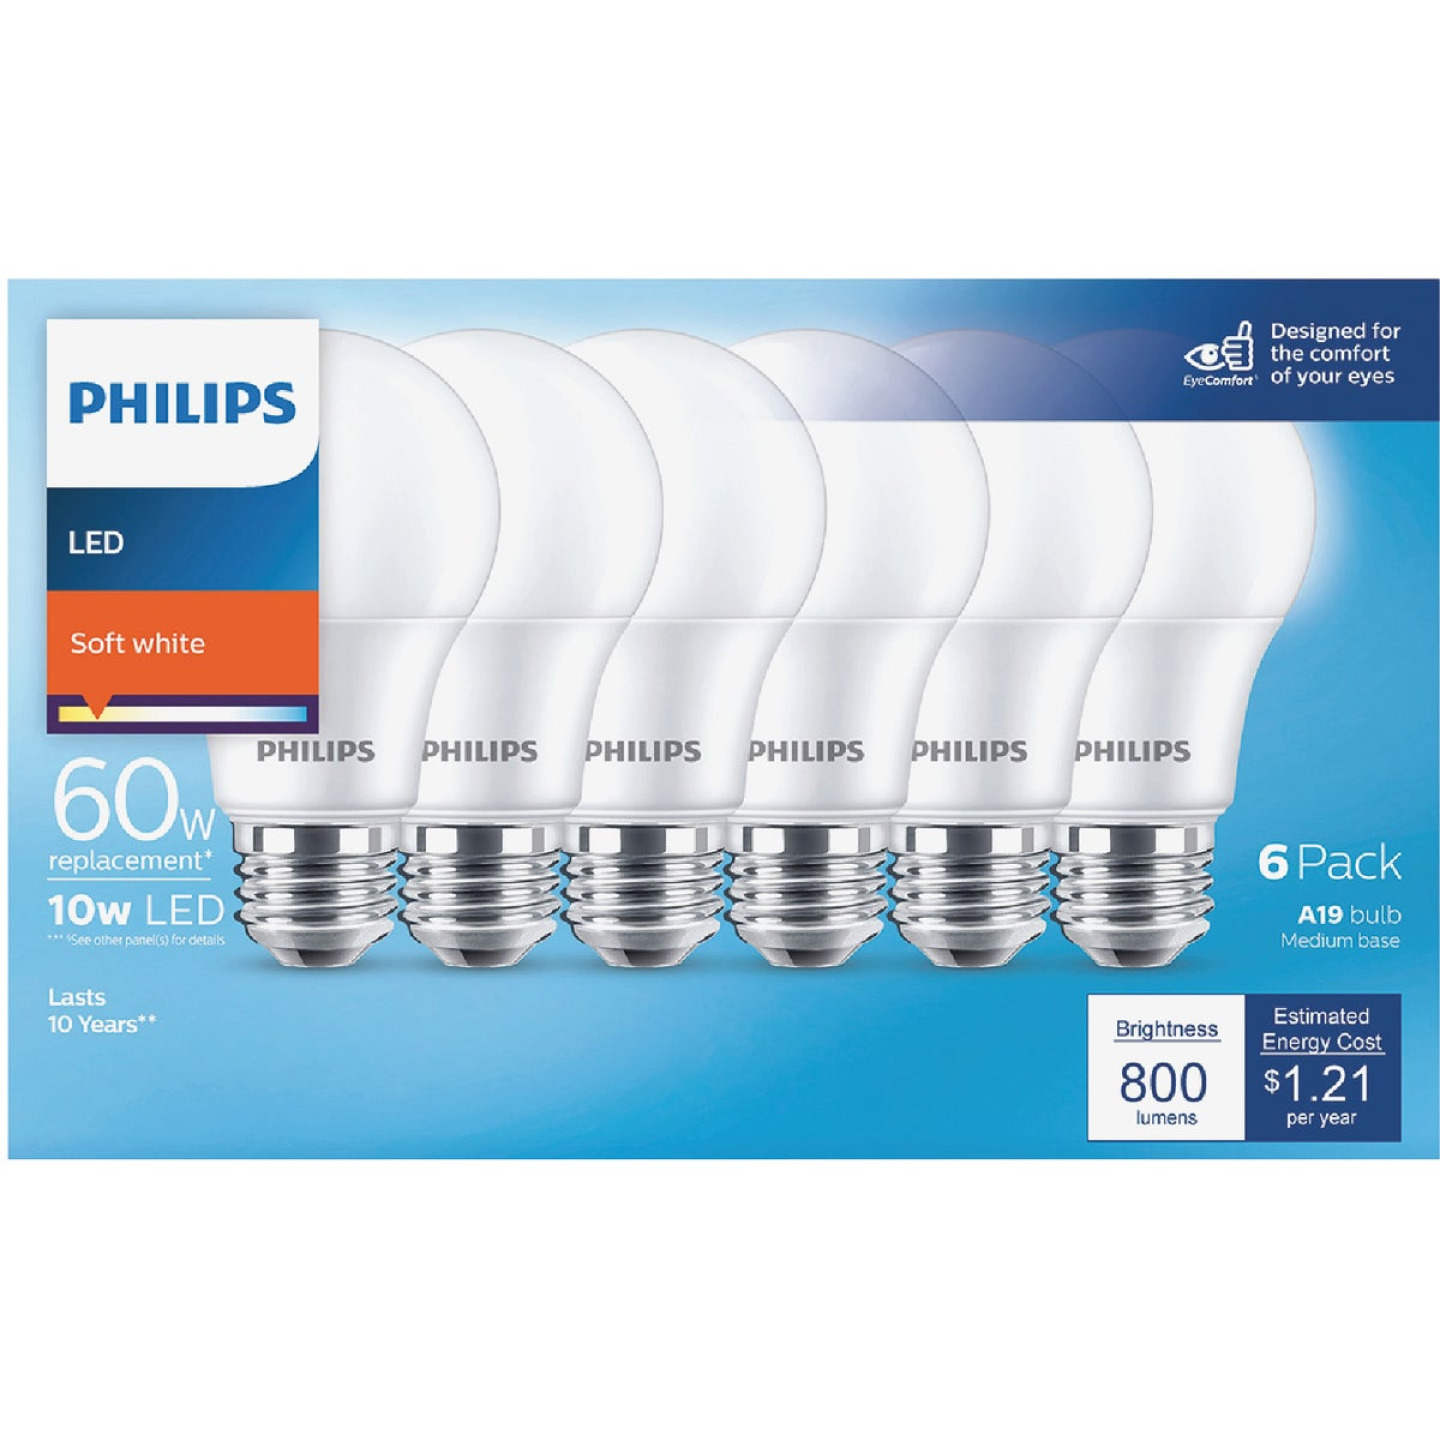 Philips 60W Equivalent Soft White A19 Medium LED Light Bulb (6-Pack) Image 2